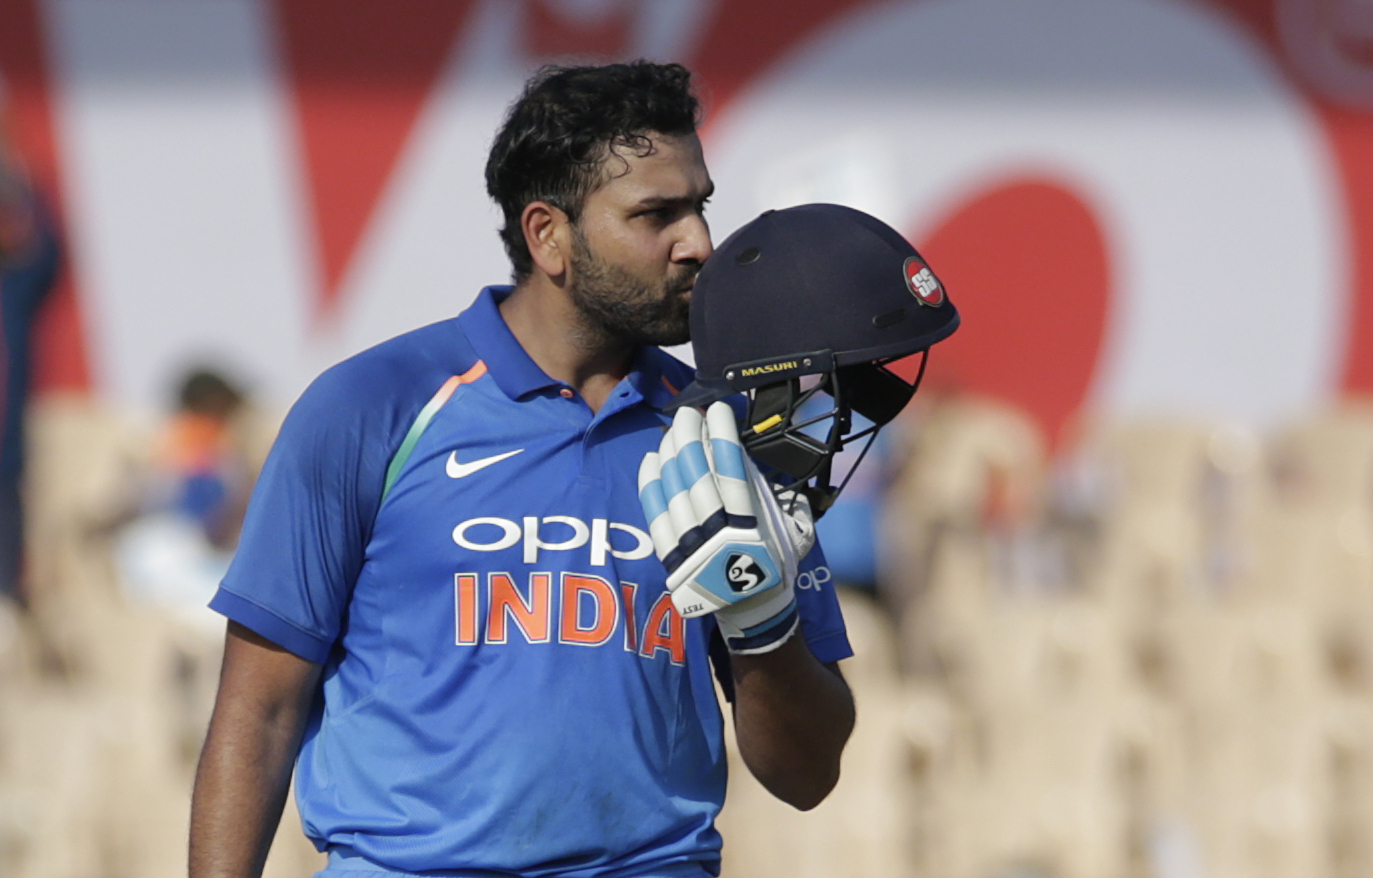 India's Rohit Sharma celebrate scoring a century during the fourth one-day international cricket match between India and West Indies in Mumbai - AP